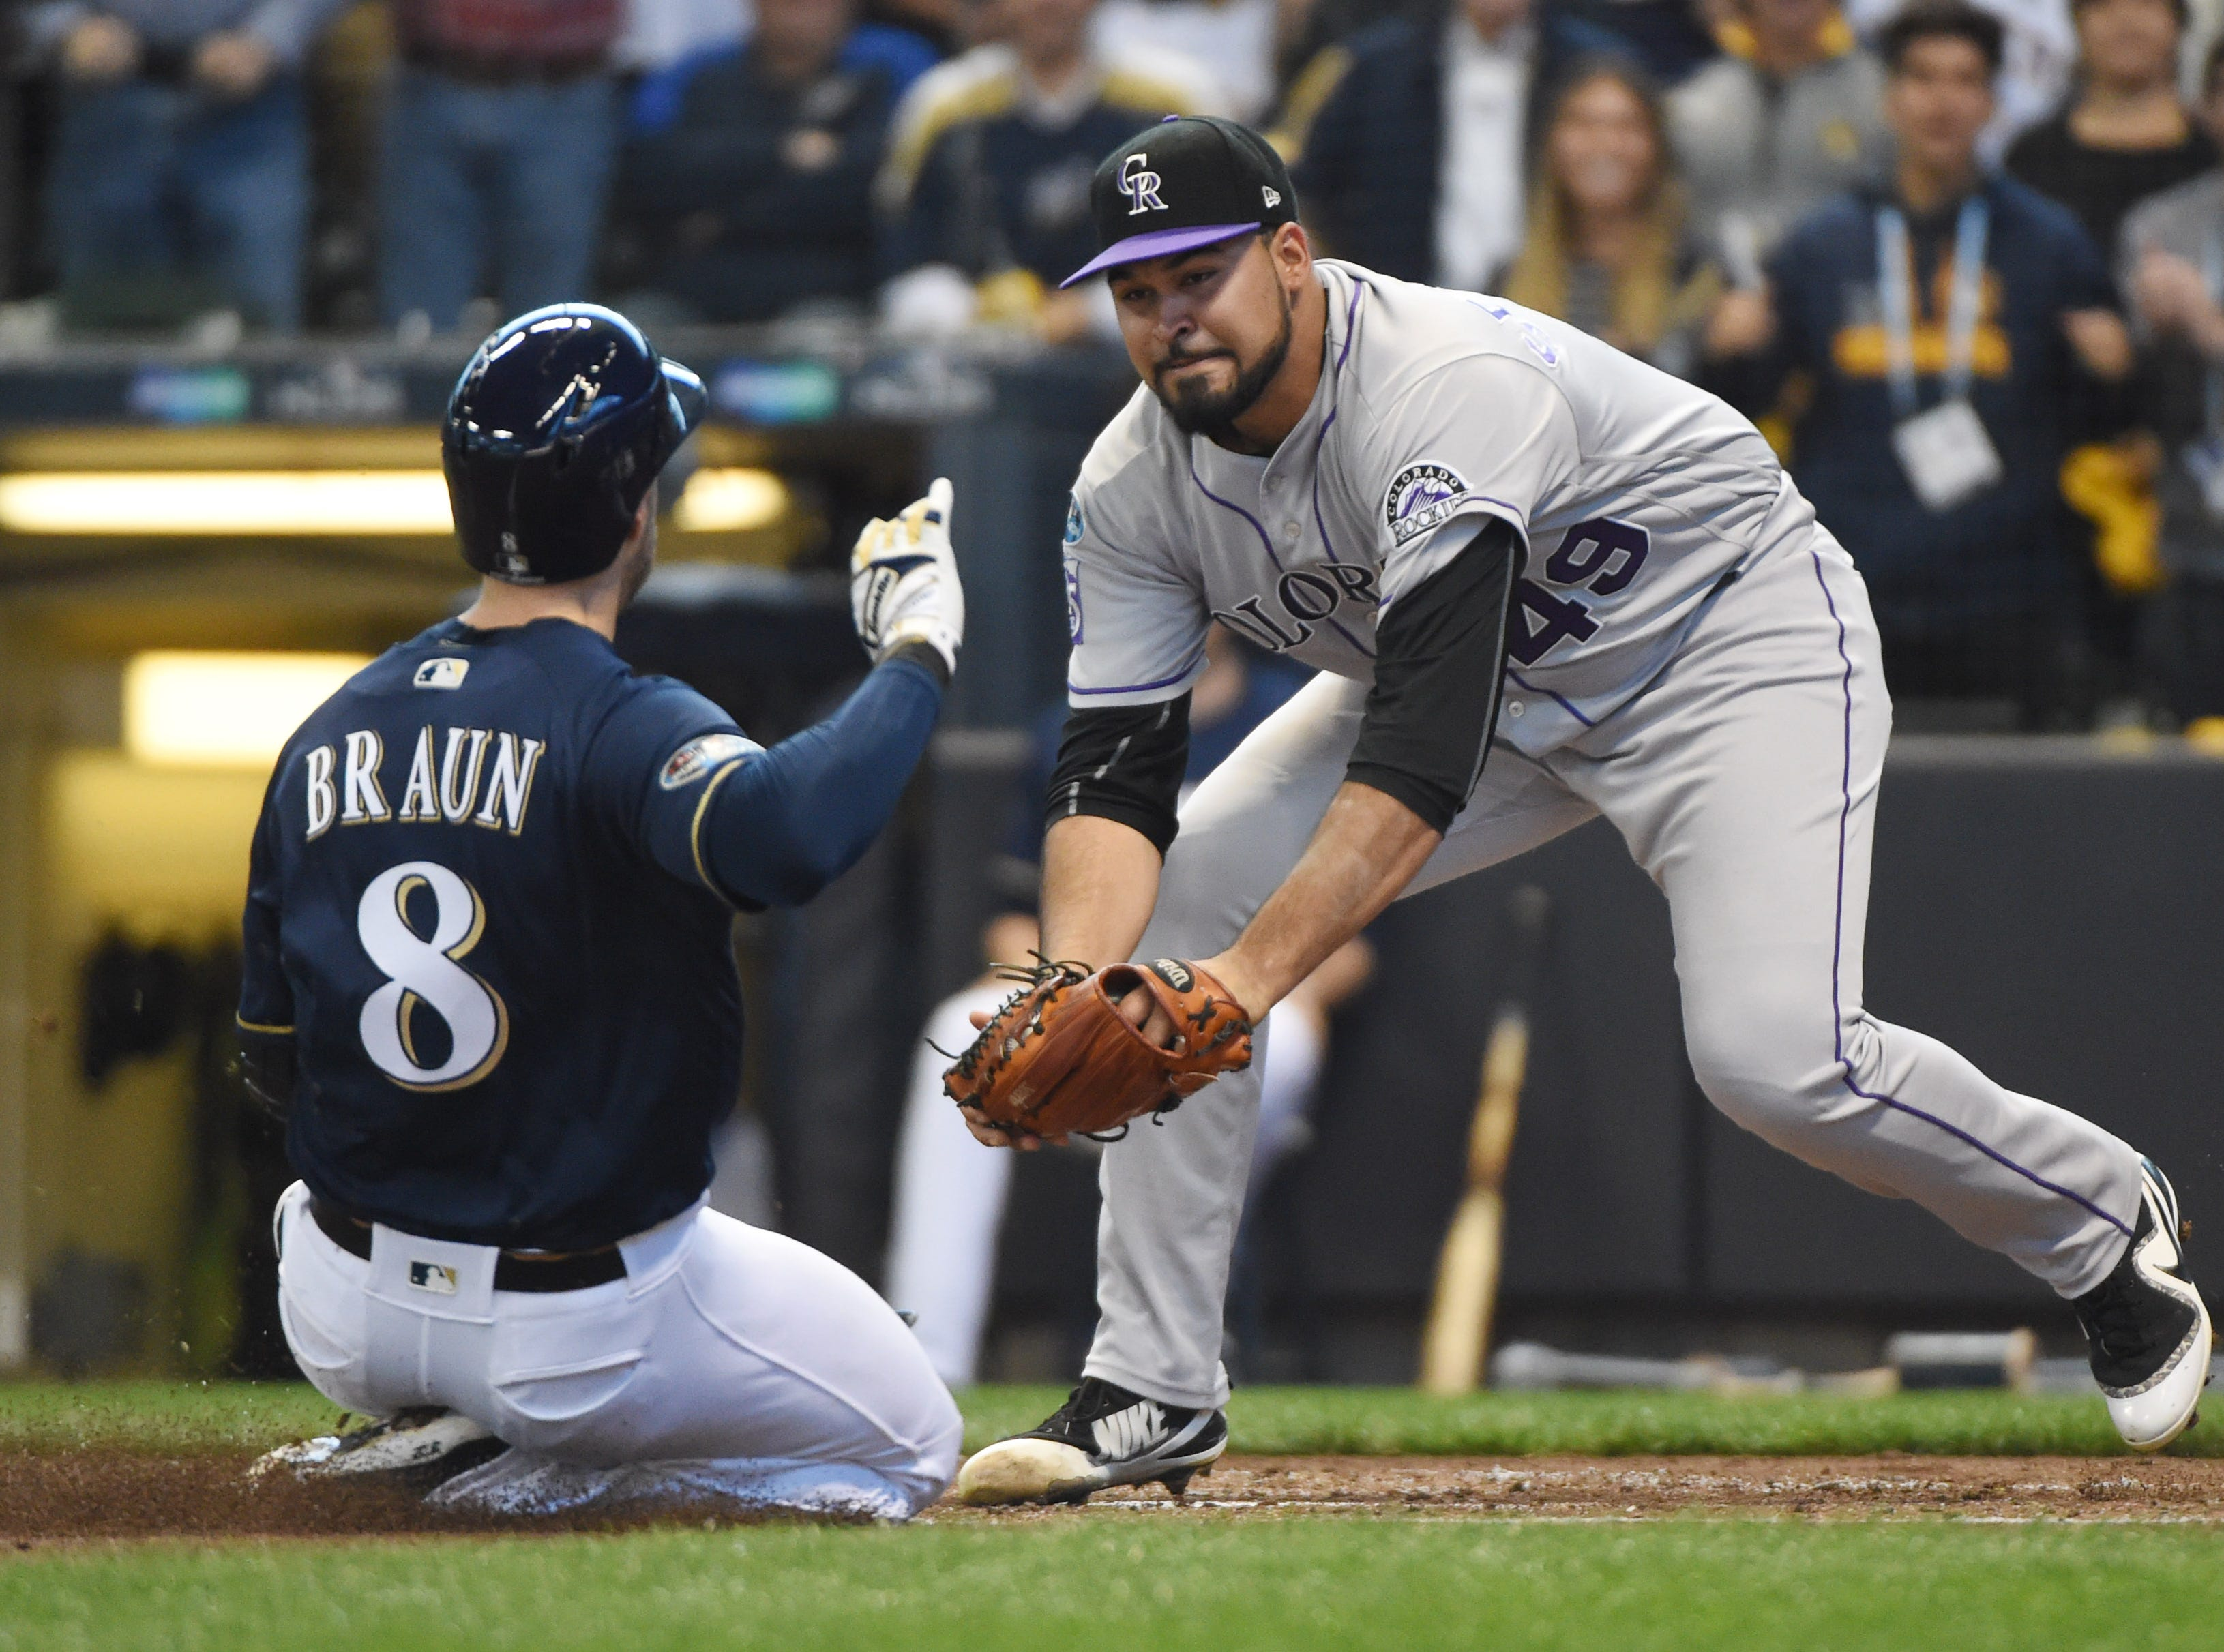 NLDS Game 1: Milwaukee's Ryan Braun is tagged out by Rockies pitcher Antonio Senzatela trying to score from second base on a wild pitch in the first inning.